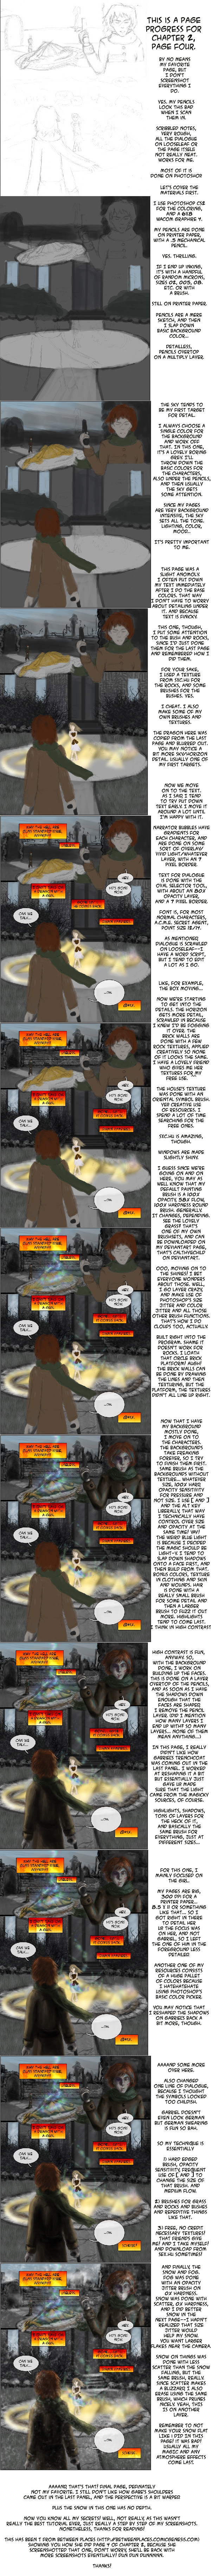 Step by Step: Chapter 2 page 4